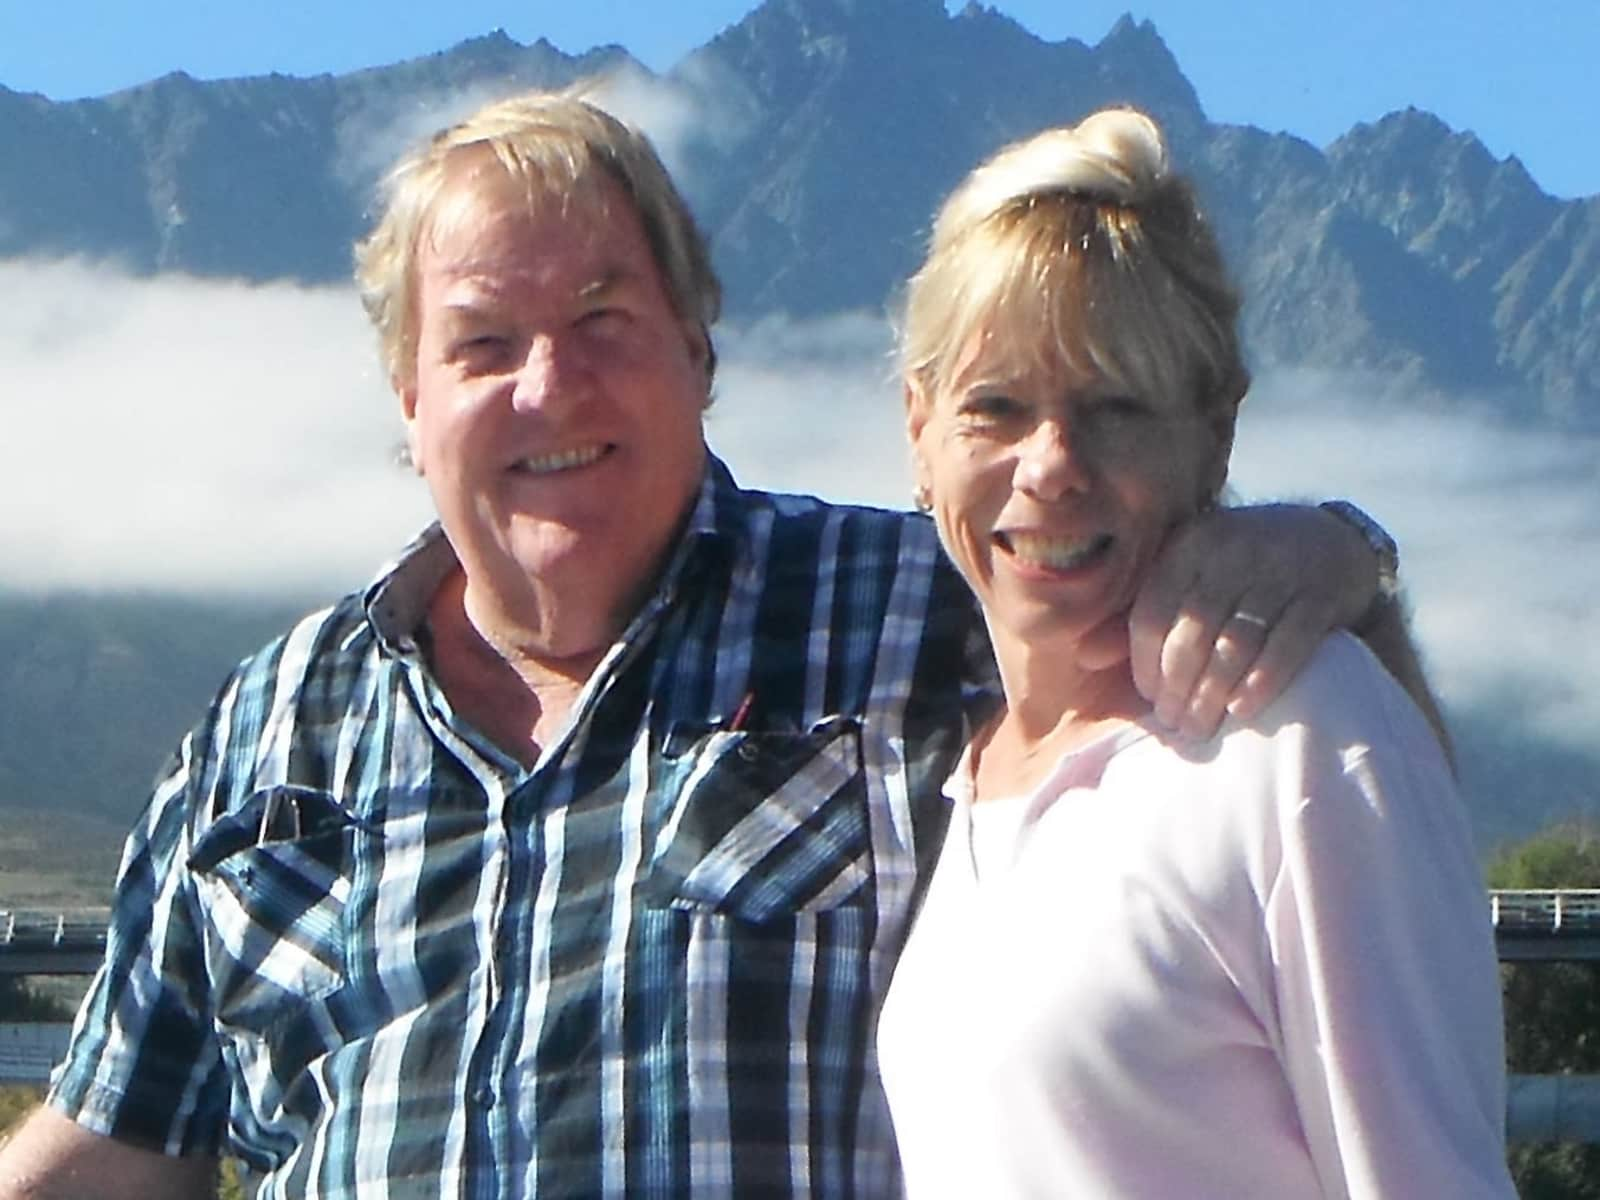 Terry & Vicki from Surfers Paradise, Queensland, Australia